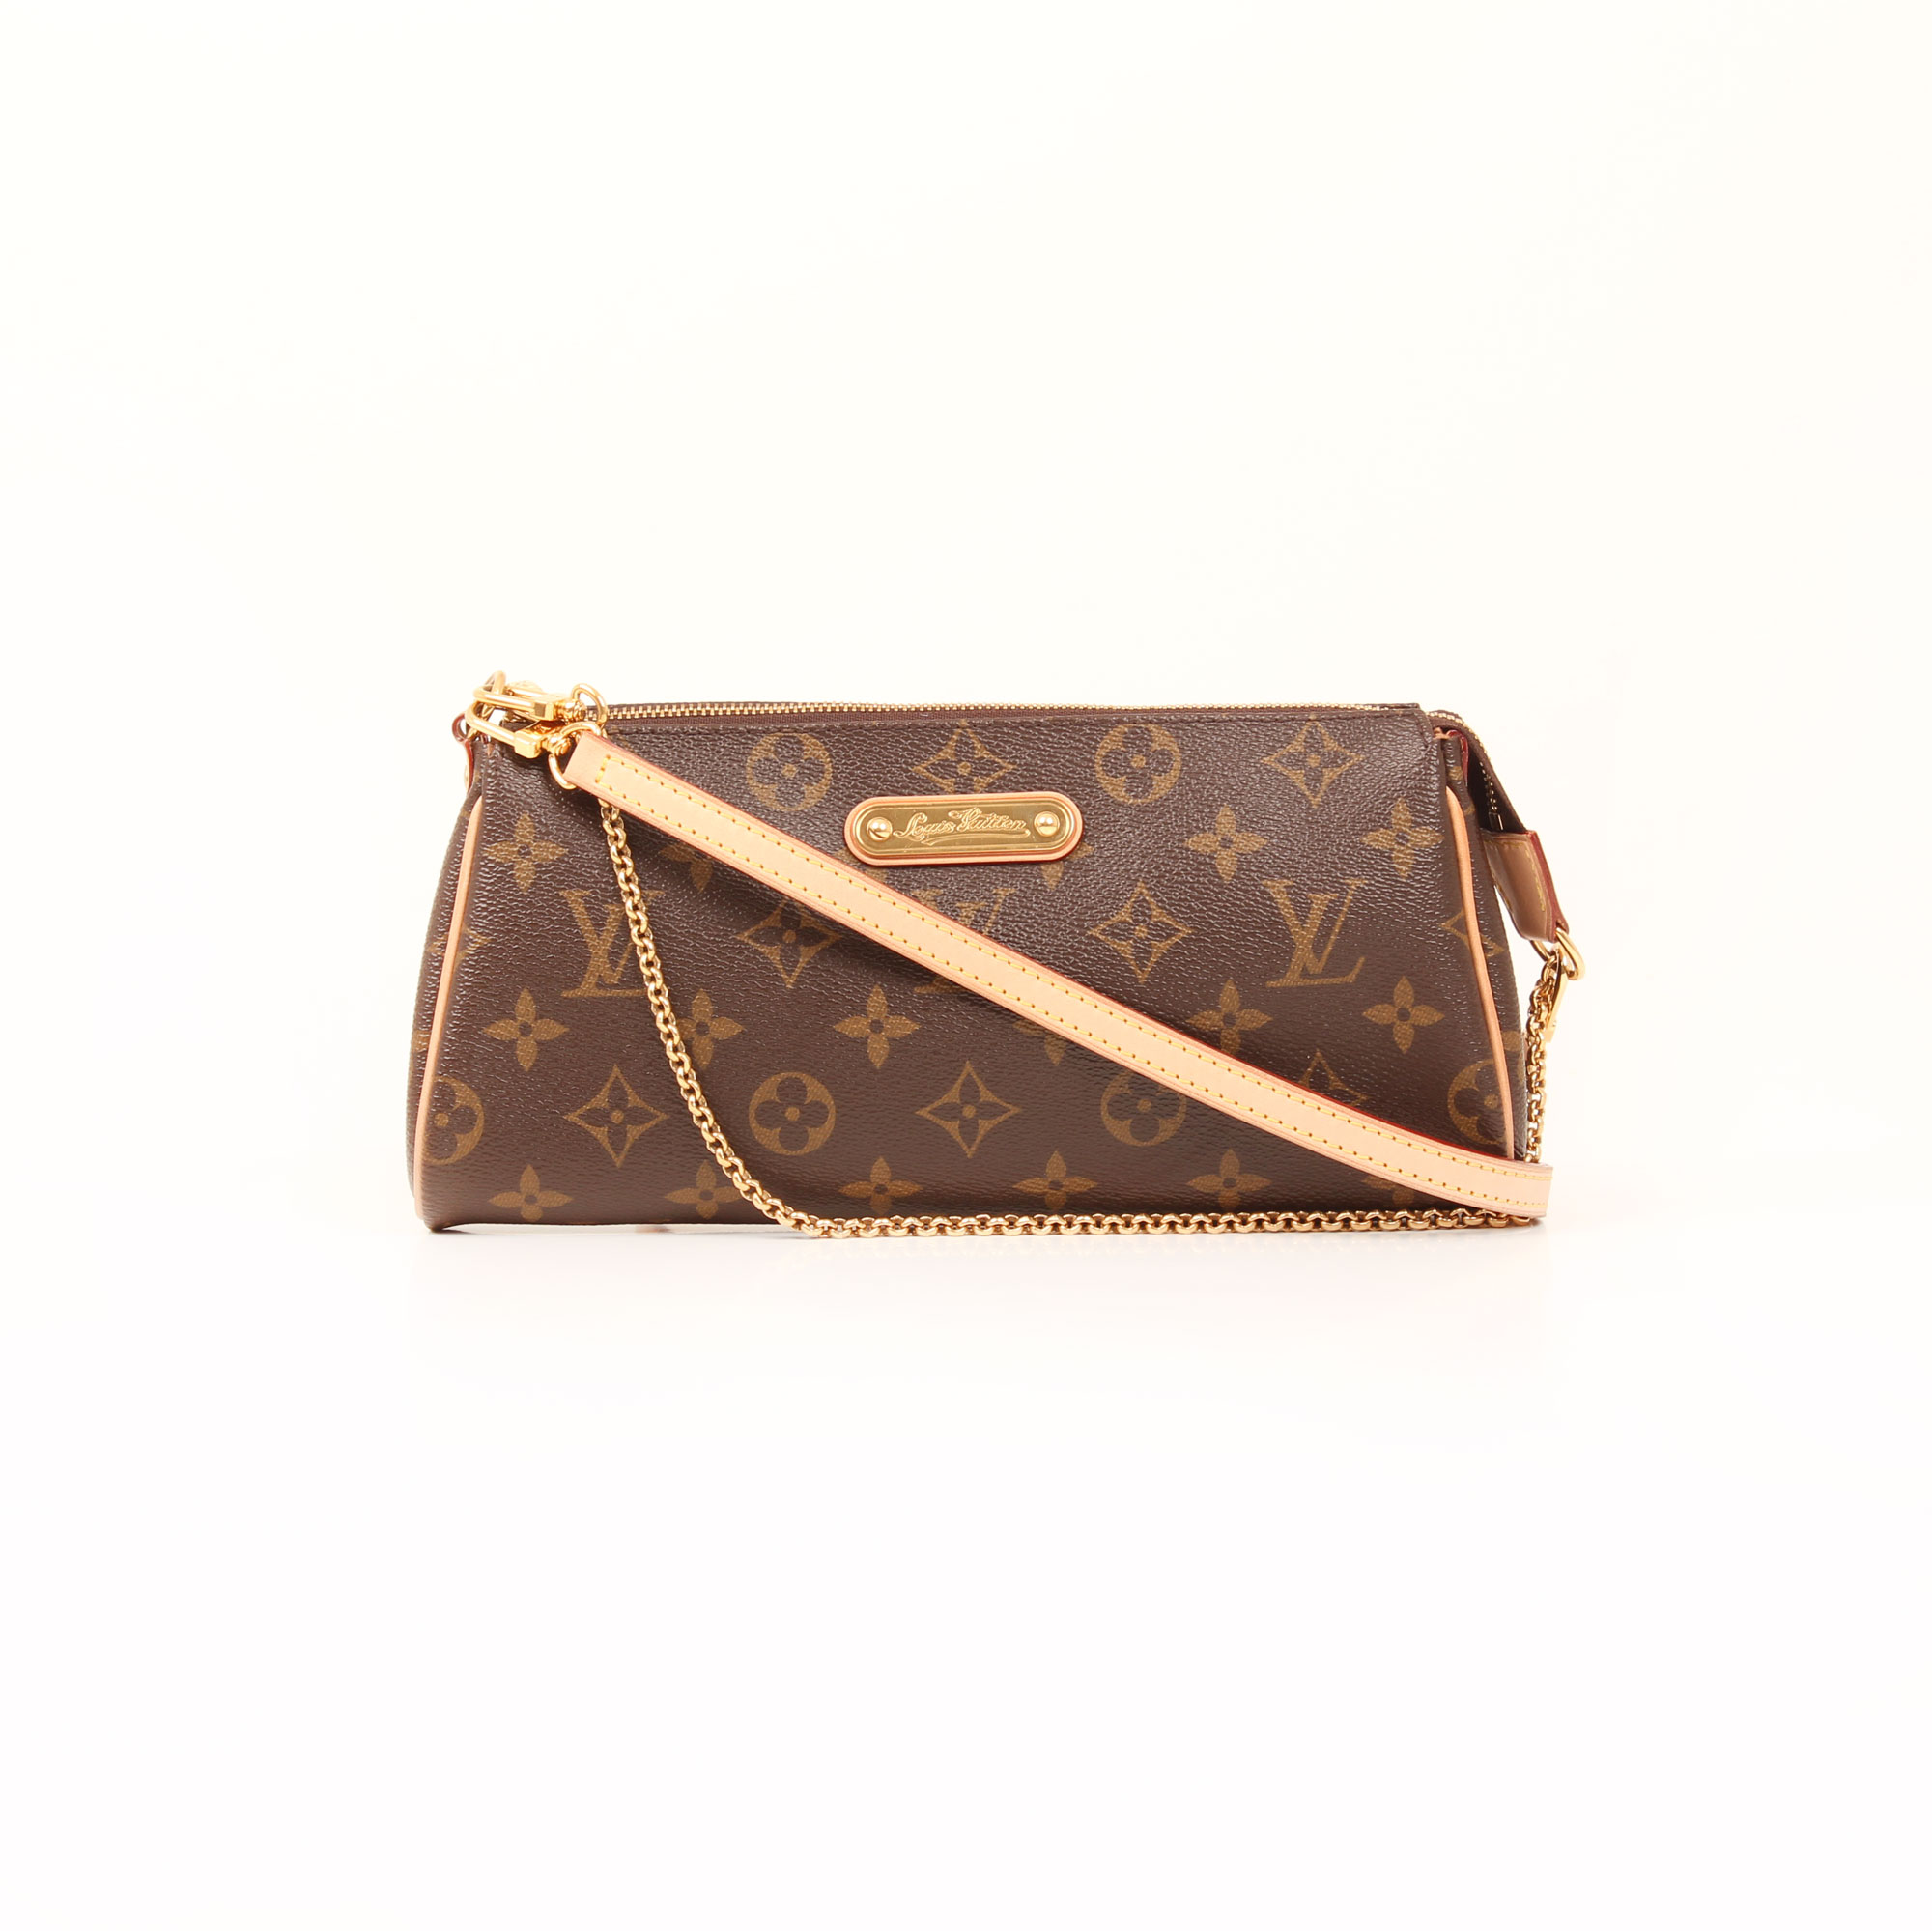 pochette-louis-vuitton-eva-monogram-frontal-bandolera